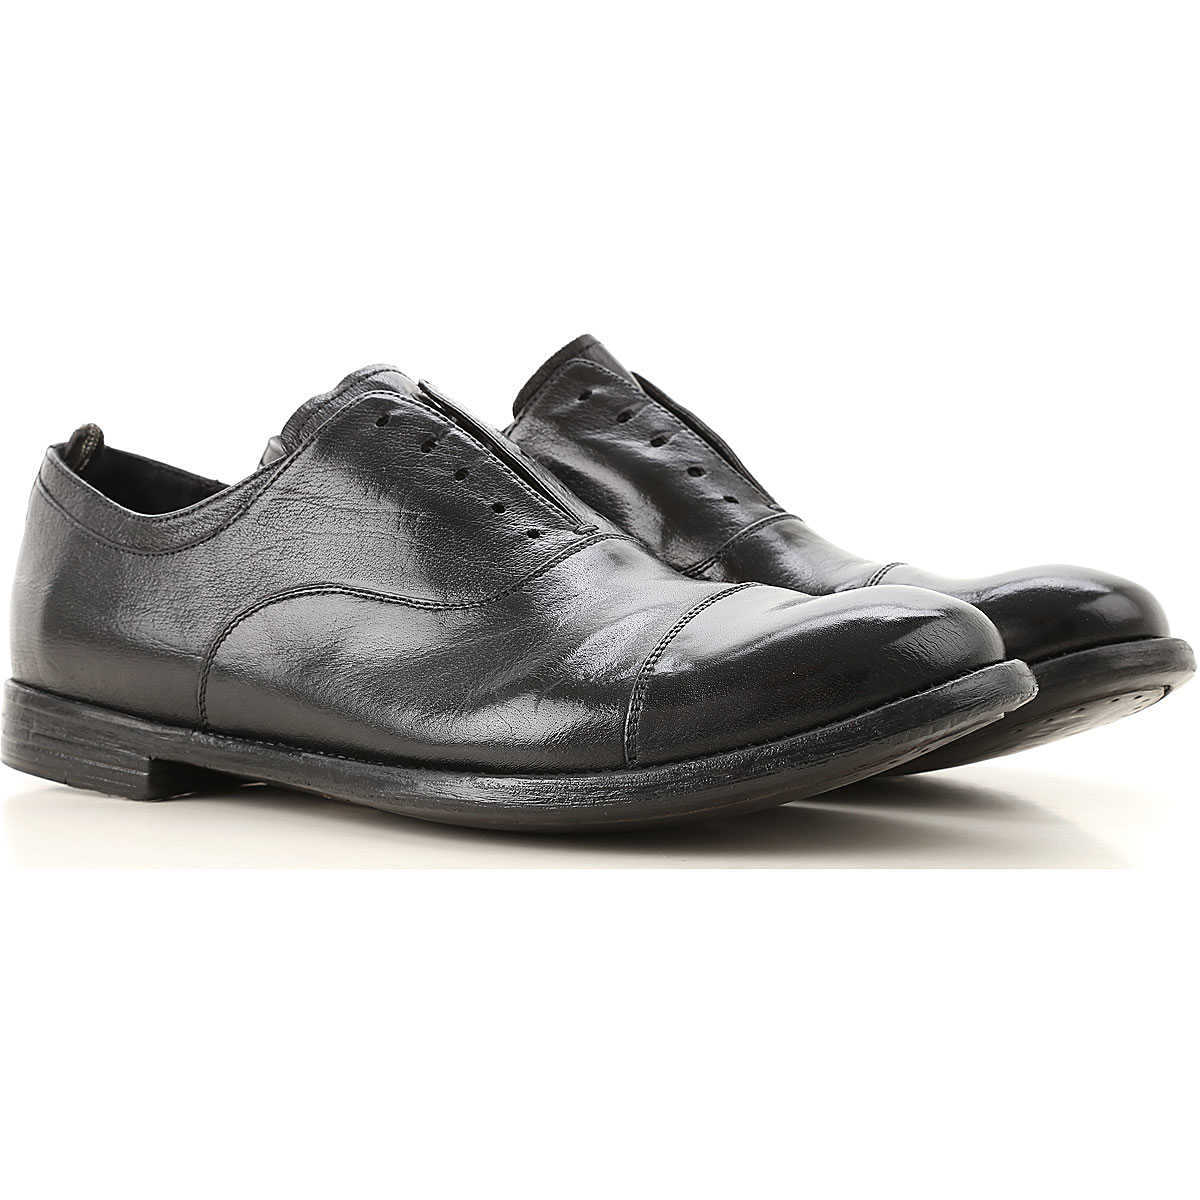 Officine Creative Lace Up Shoes for Men Oxfords 6.5 9 Derbies and Brogues On Sale UK - GOOFASH